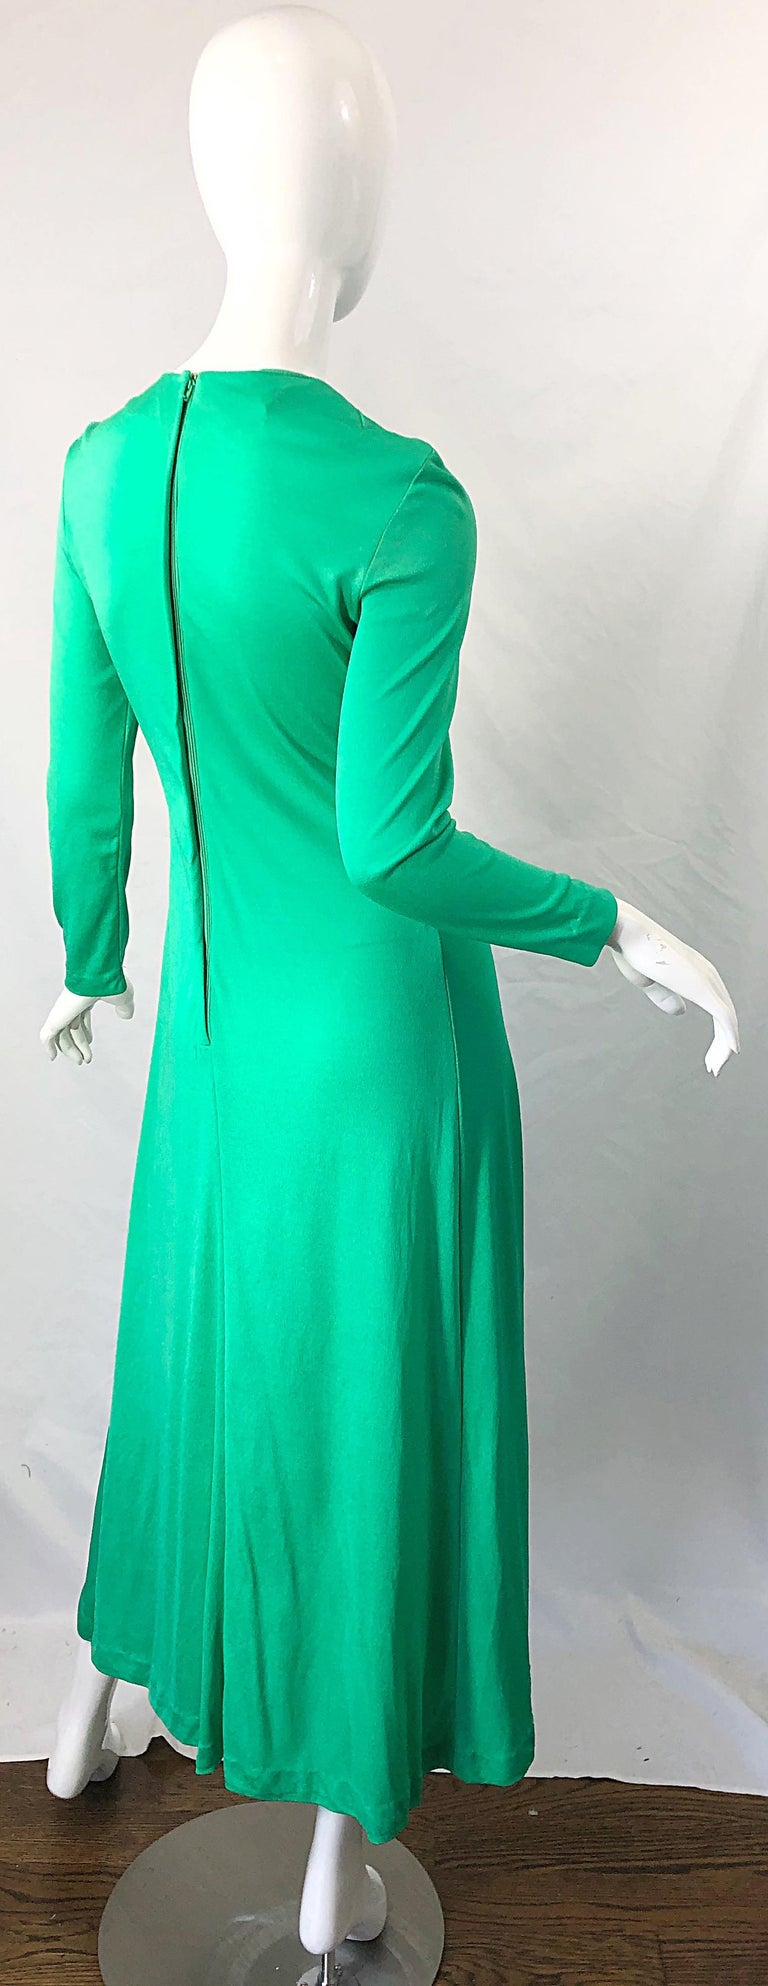 Women's 1970s Fredrick's of Hollywood Kelly Green Vintage Jersey 70s Maxi Dress For Sale